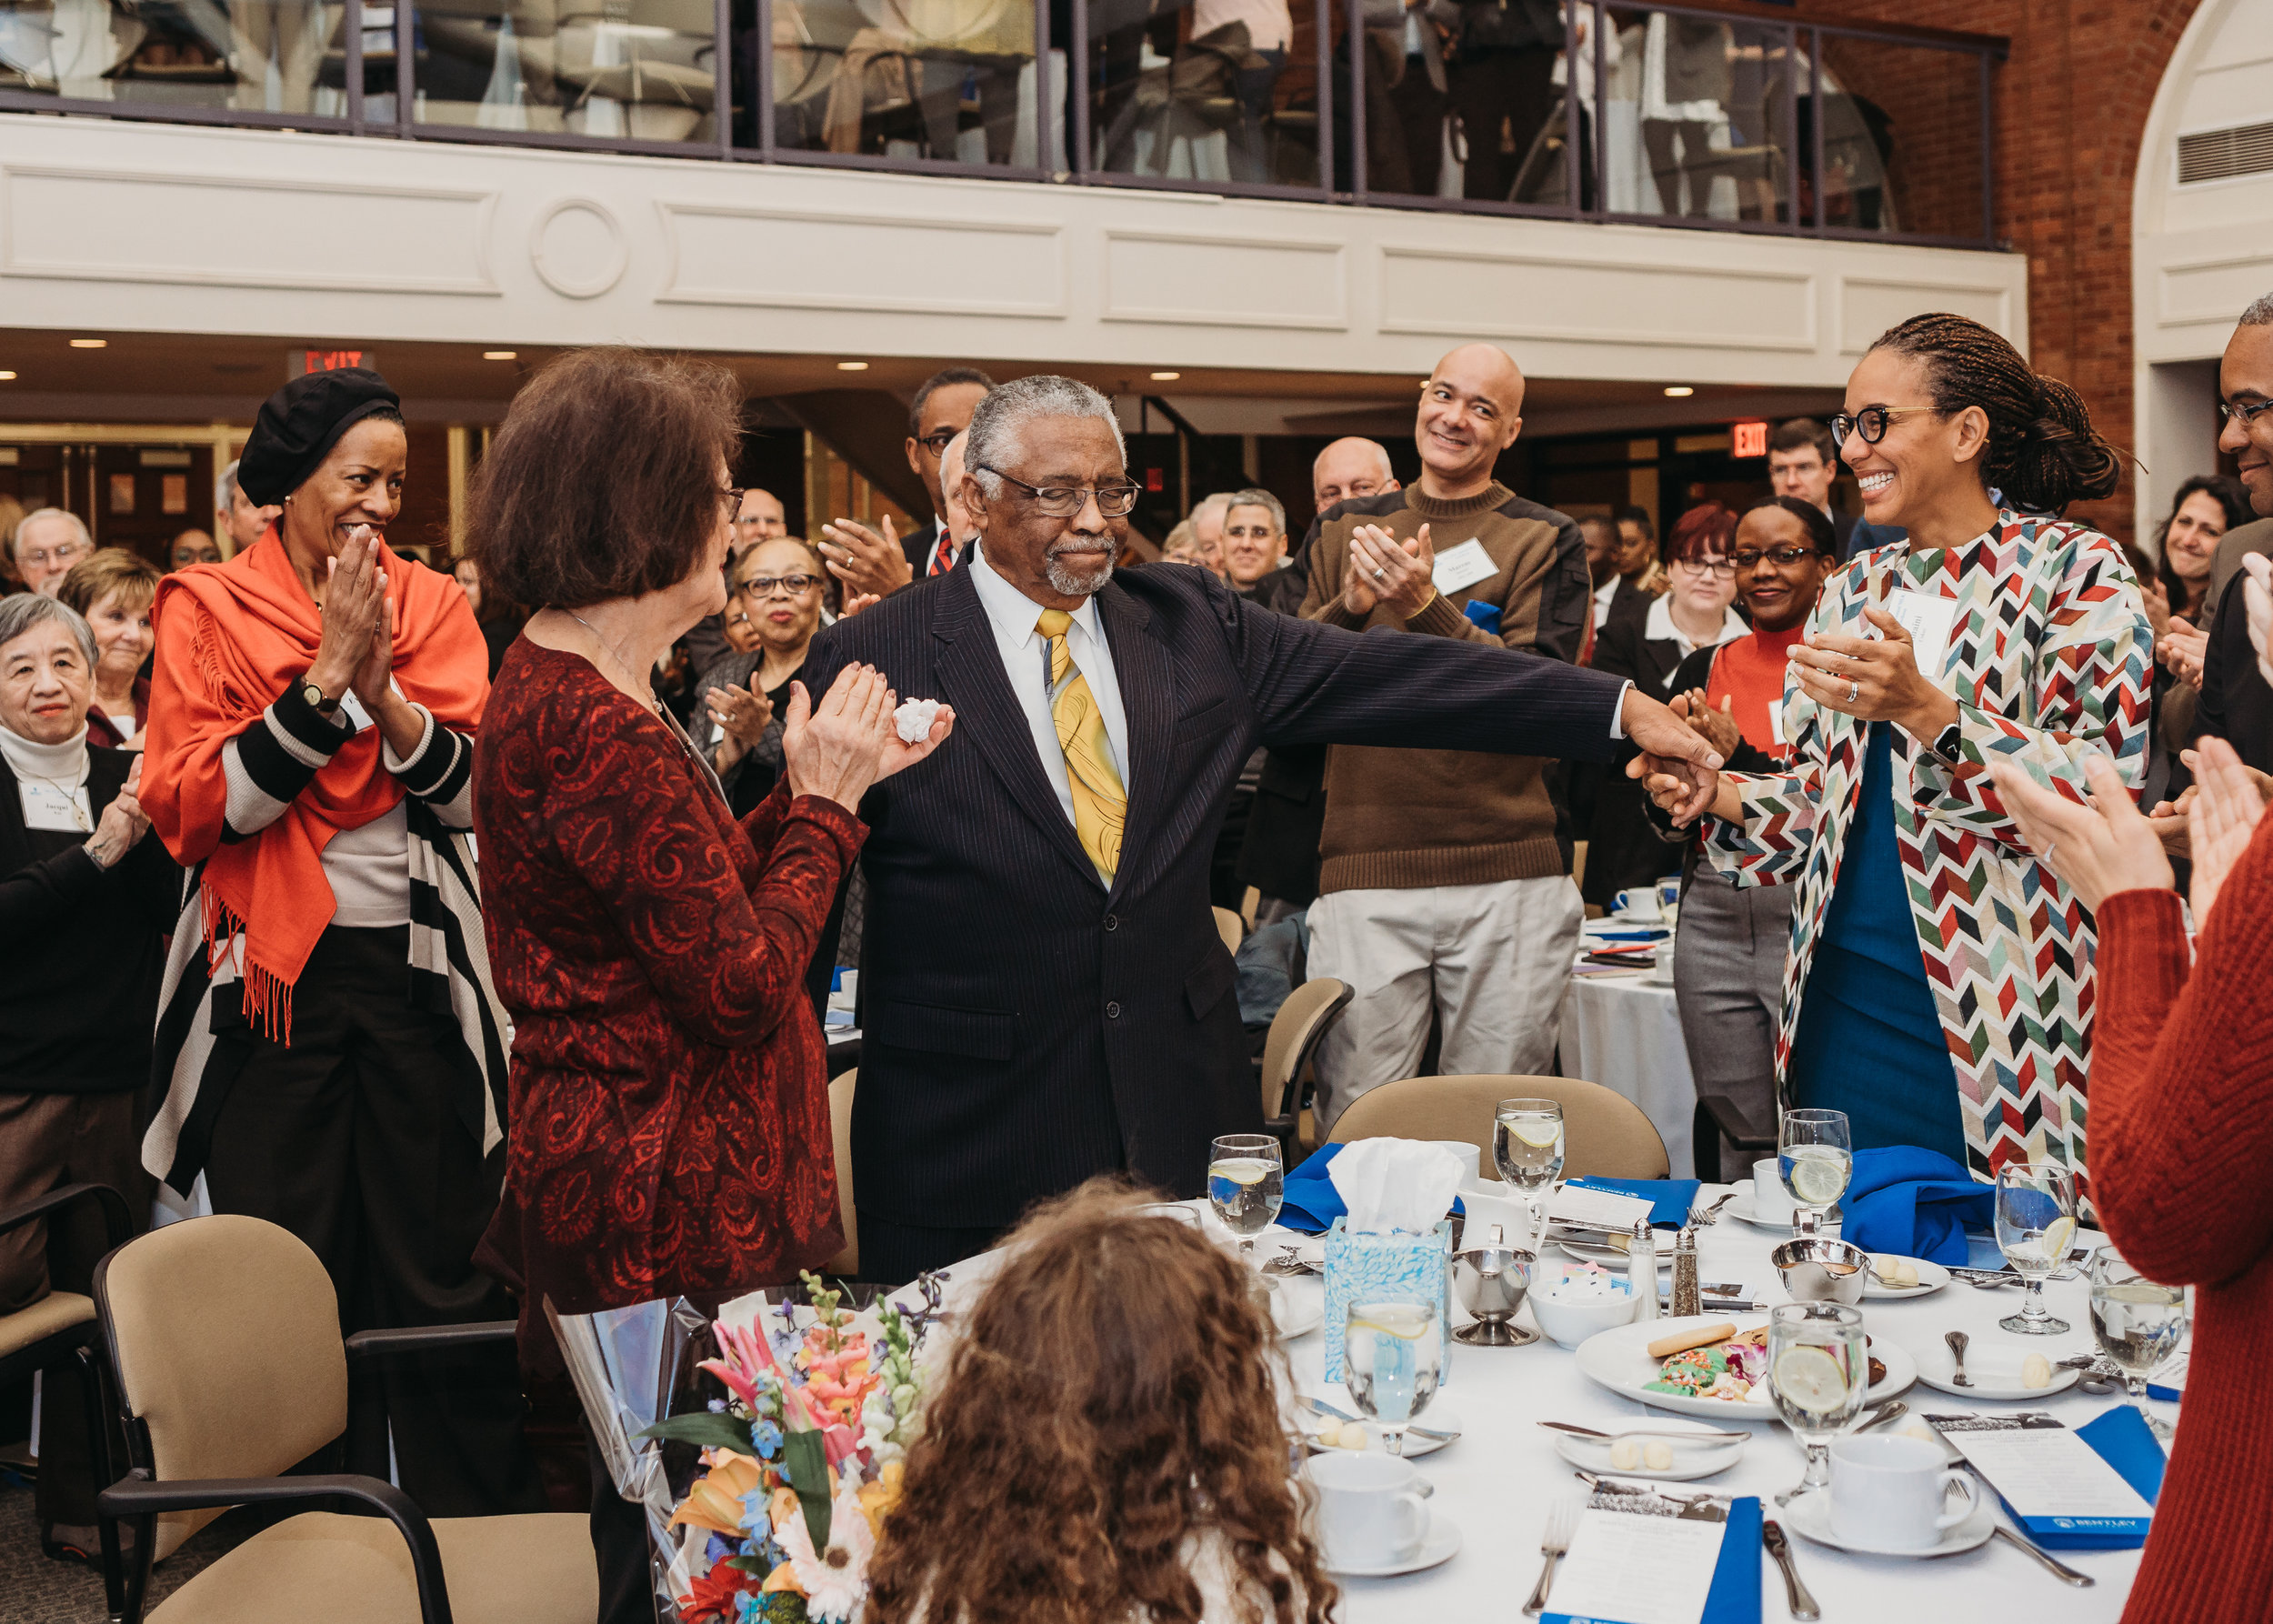 Covering Bentley University's MLK Luncheon featuring retiring ombudsman Earl Avery. Boston corporate event photography by Joy LeDuc.